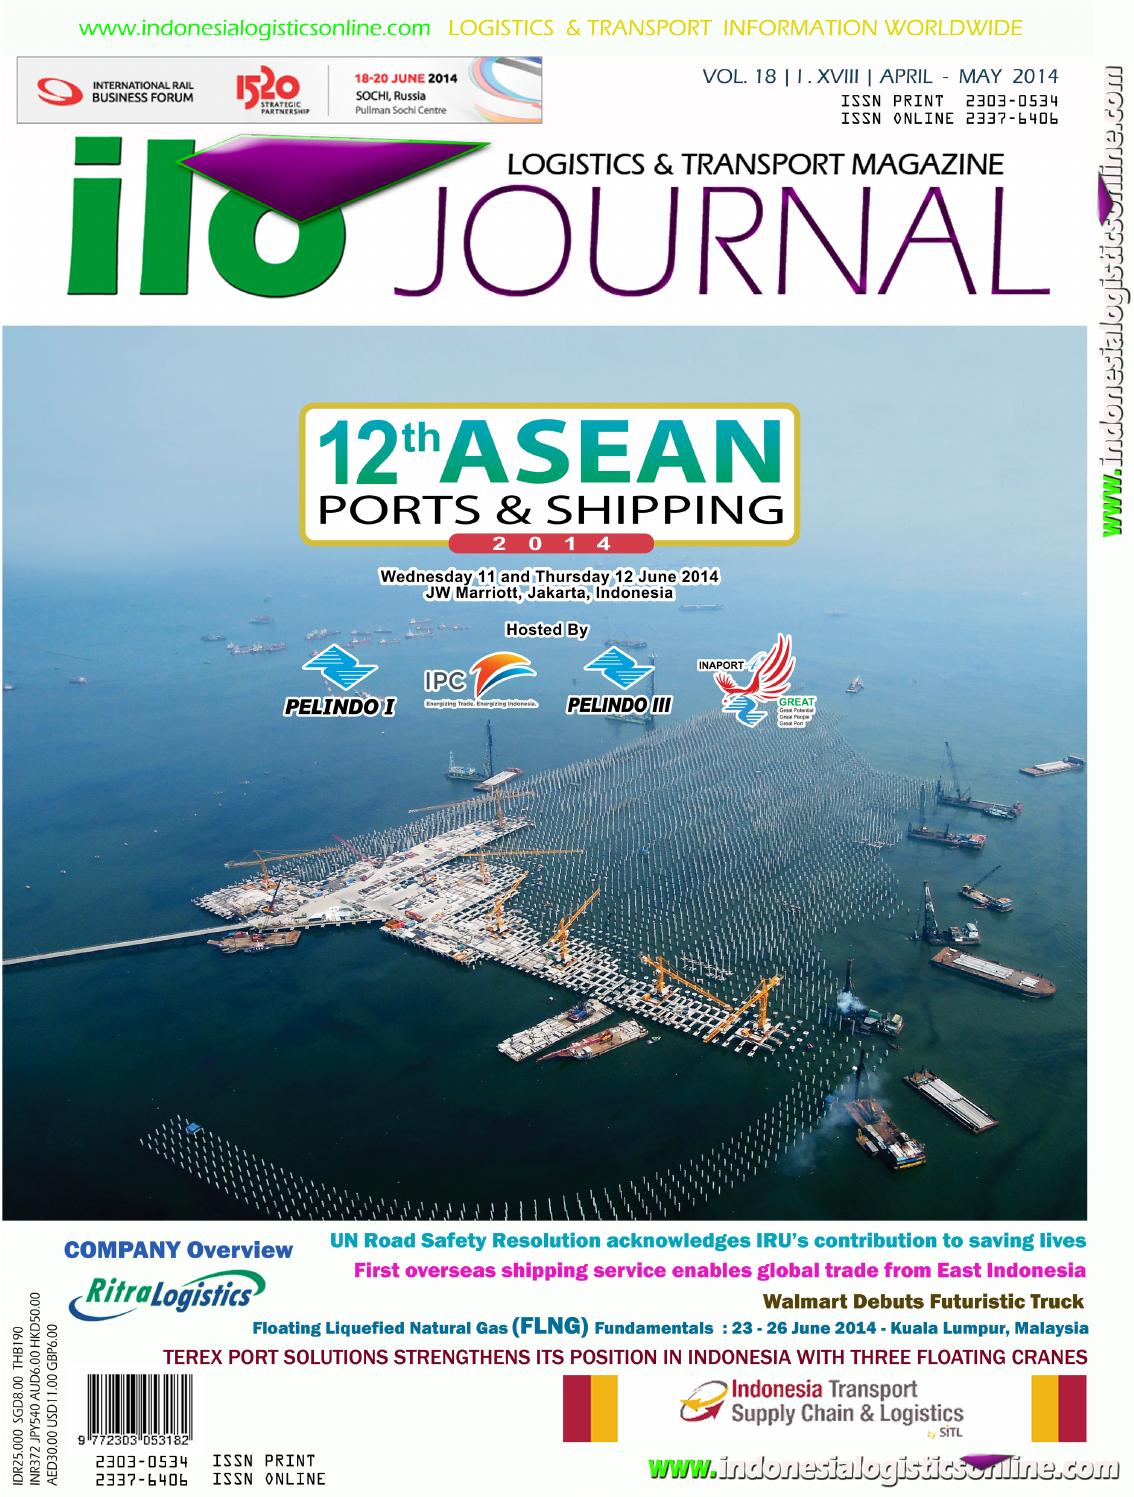 Volume 18 april may 2014 by indonesialogisticsonline ilojournal - issuu